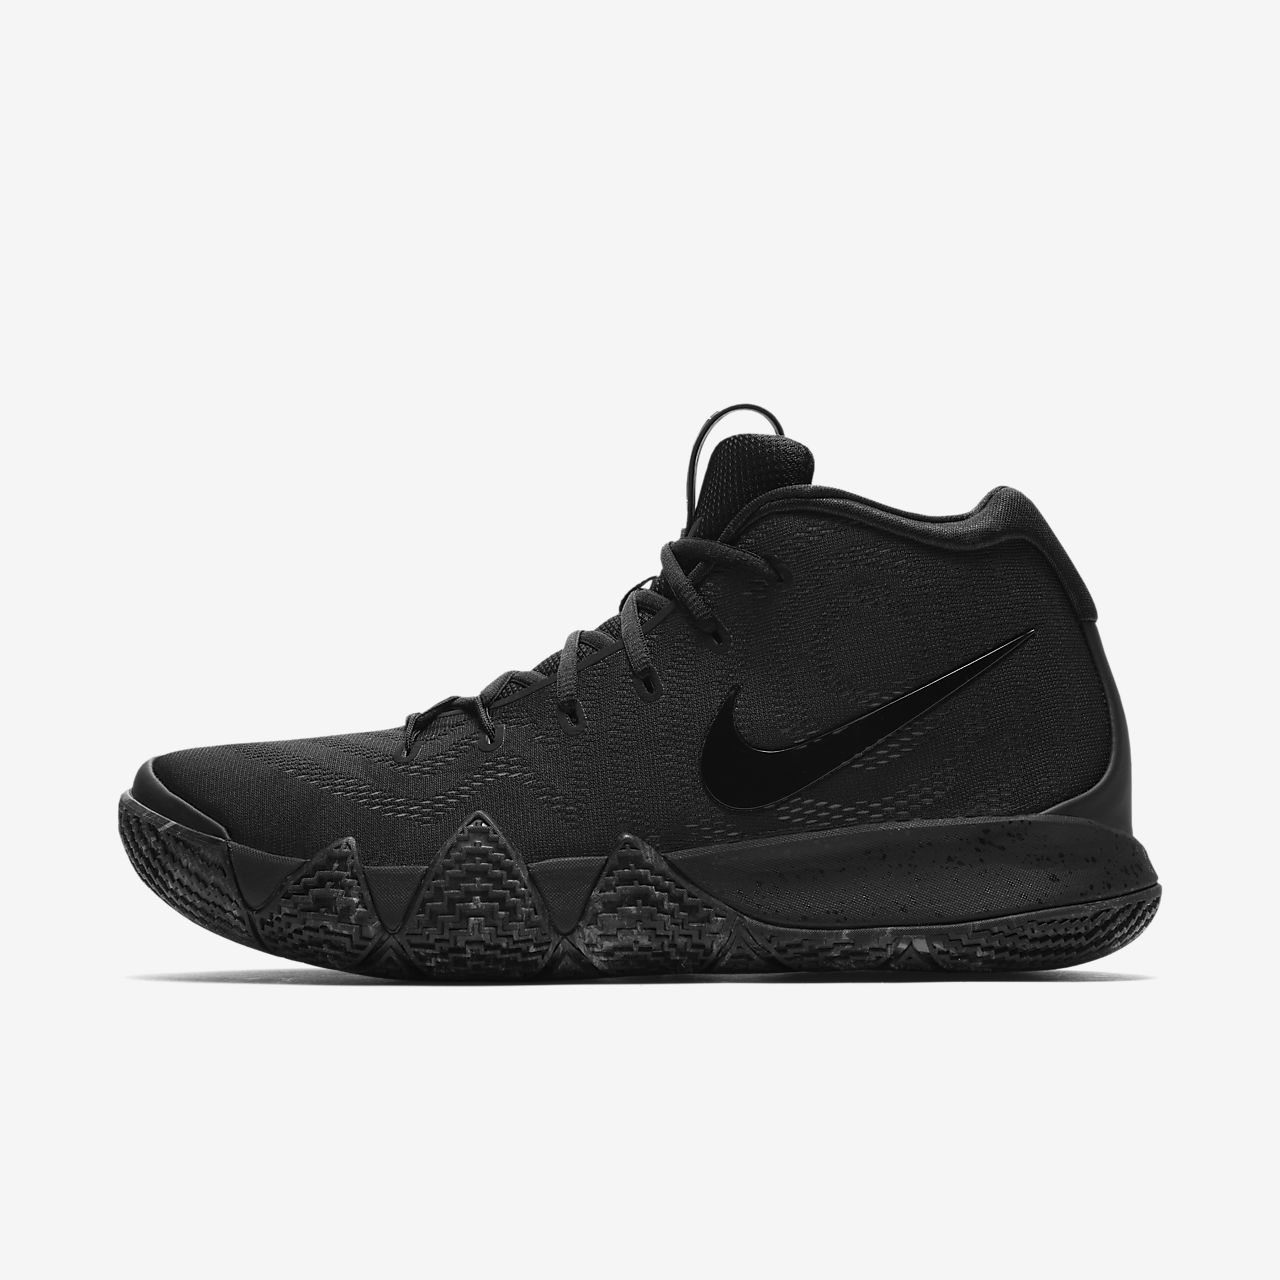 e9cdb8ed0802 Kyrie 4 Basketball Shoe. Nike.com NZ